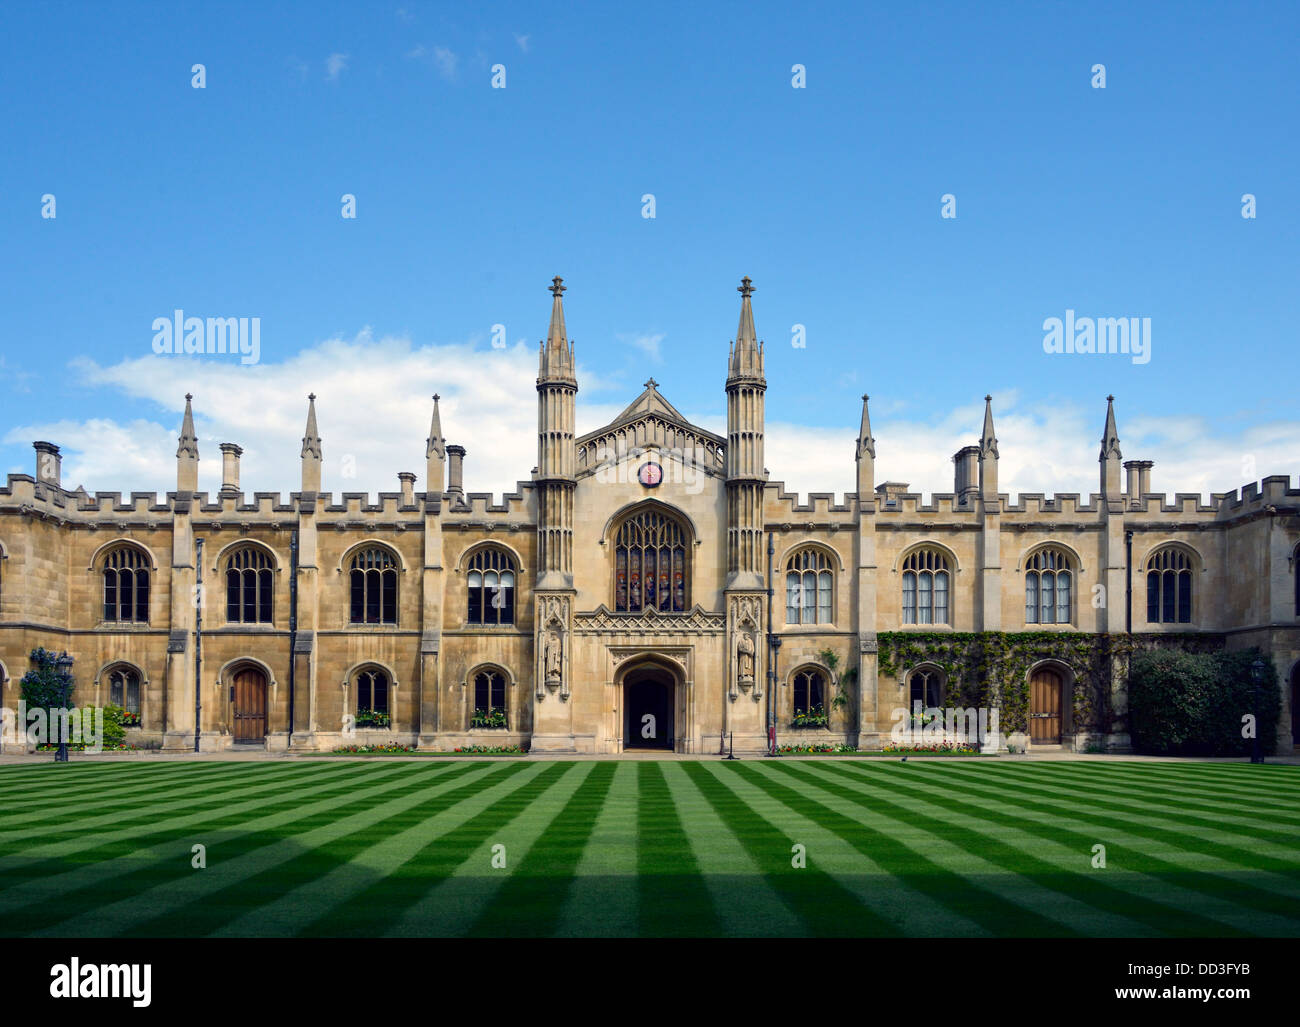 corpus-christi-college-university-of-cambridge-cambridgeshire-england-DD3FYB.jpg